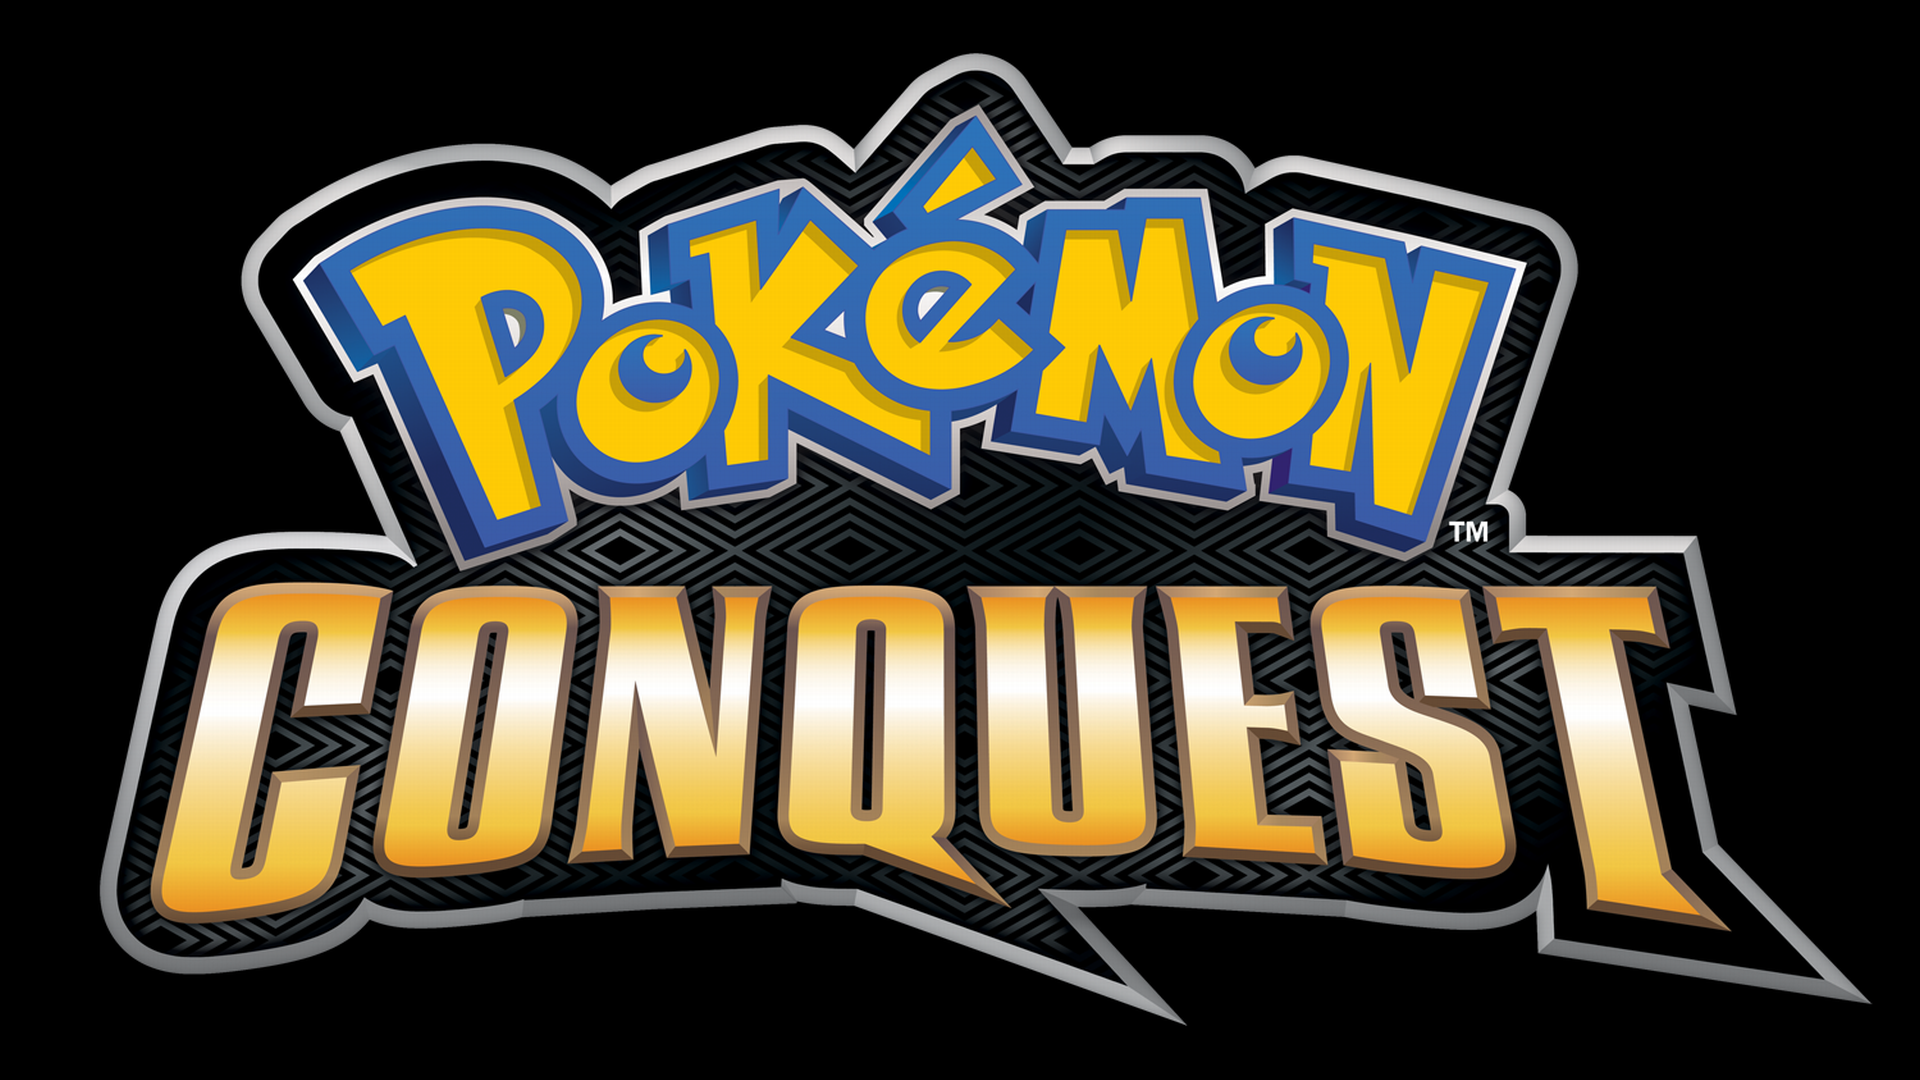 Pokémon Conquest Logo